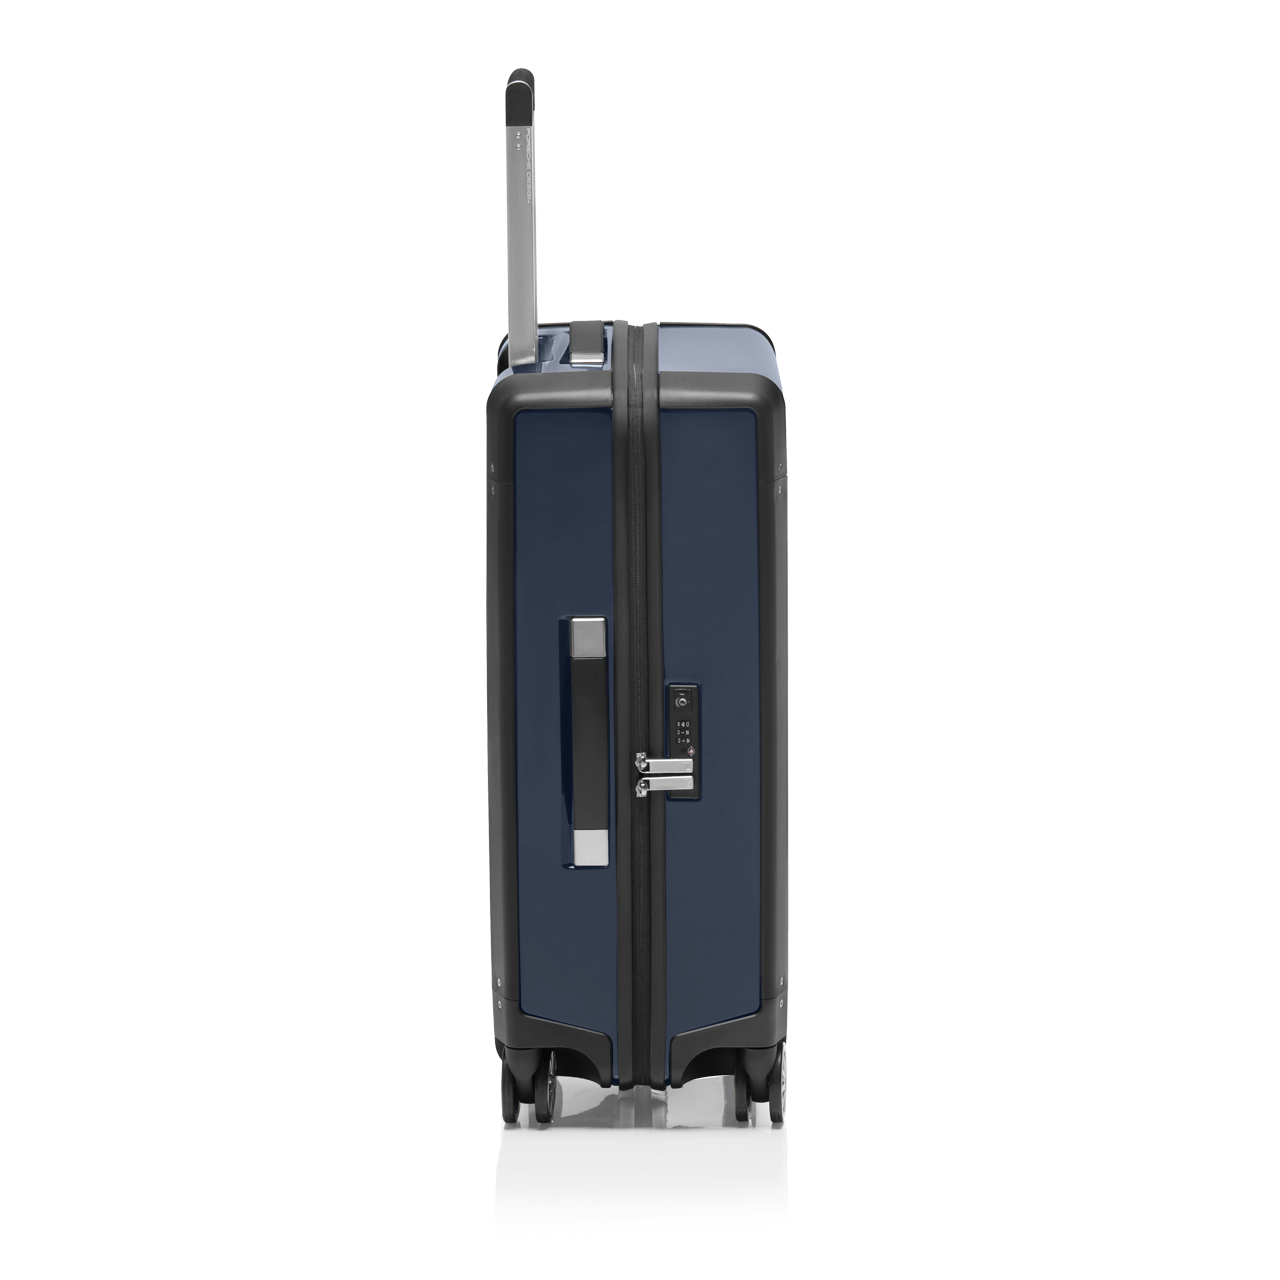 ROADSTER HARDCASE TROLLEY M - фото 2